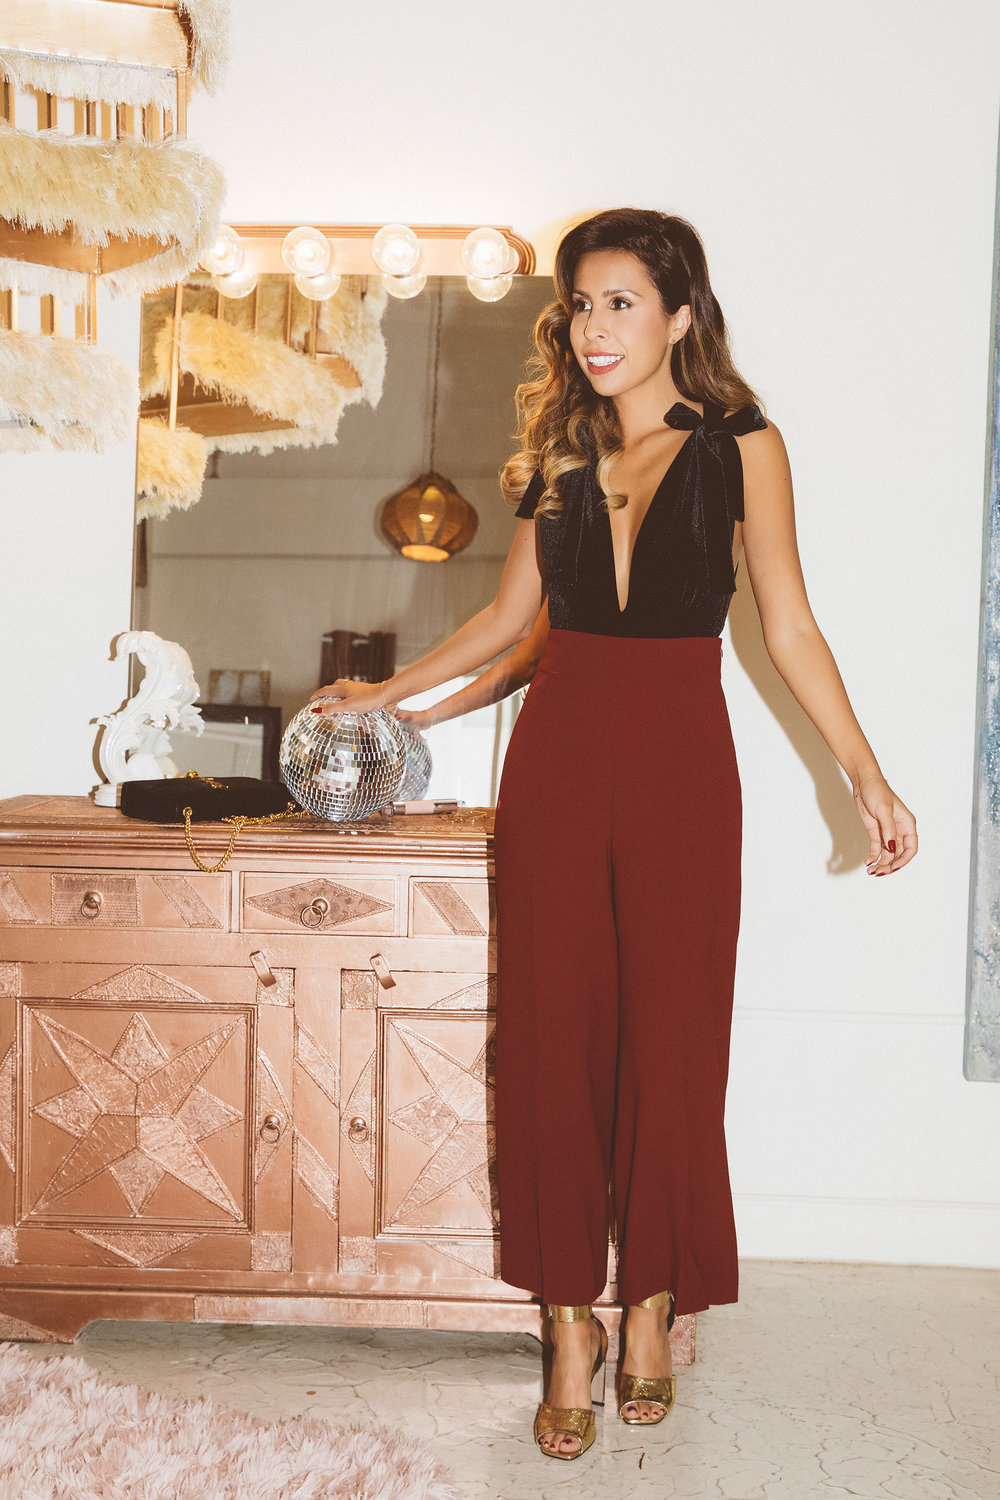 Perfect pairing: wide legs pants and velvet bodysuit